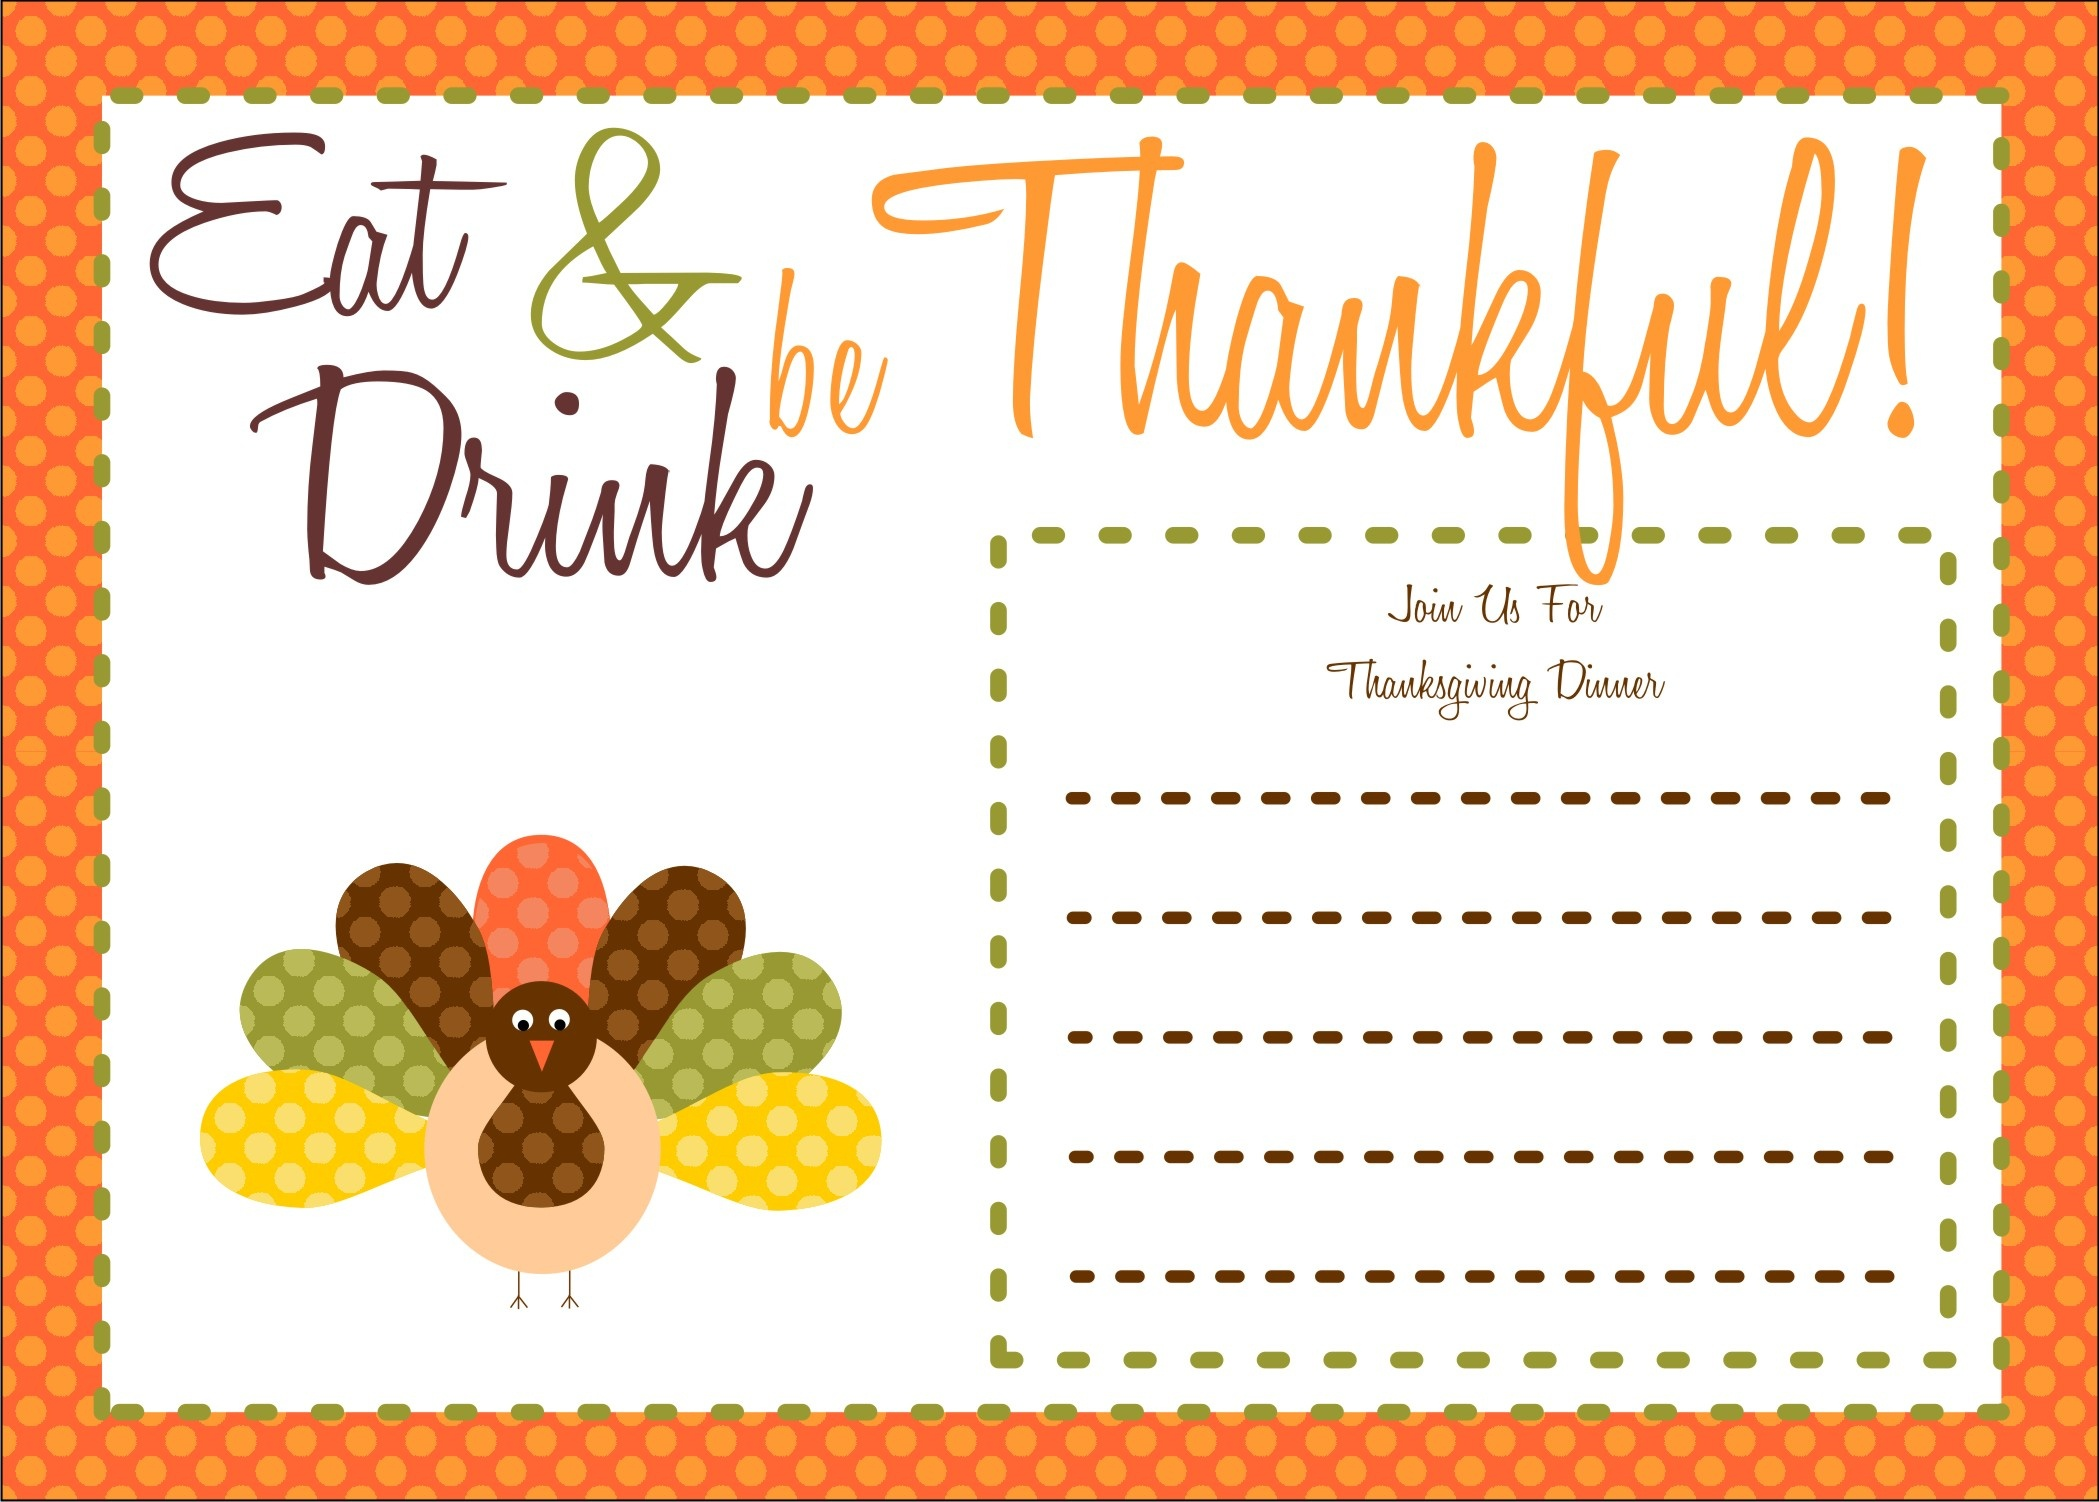 Printable Thanksgiving Invitations Templates – Happy Easter - Free Printable Thanksgiving Dinner Invitation Templates